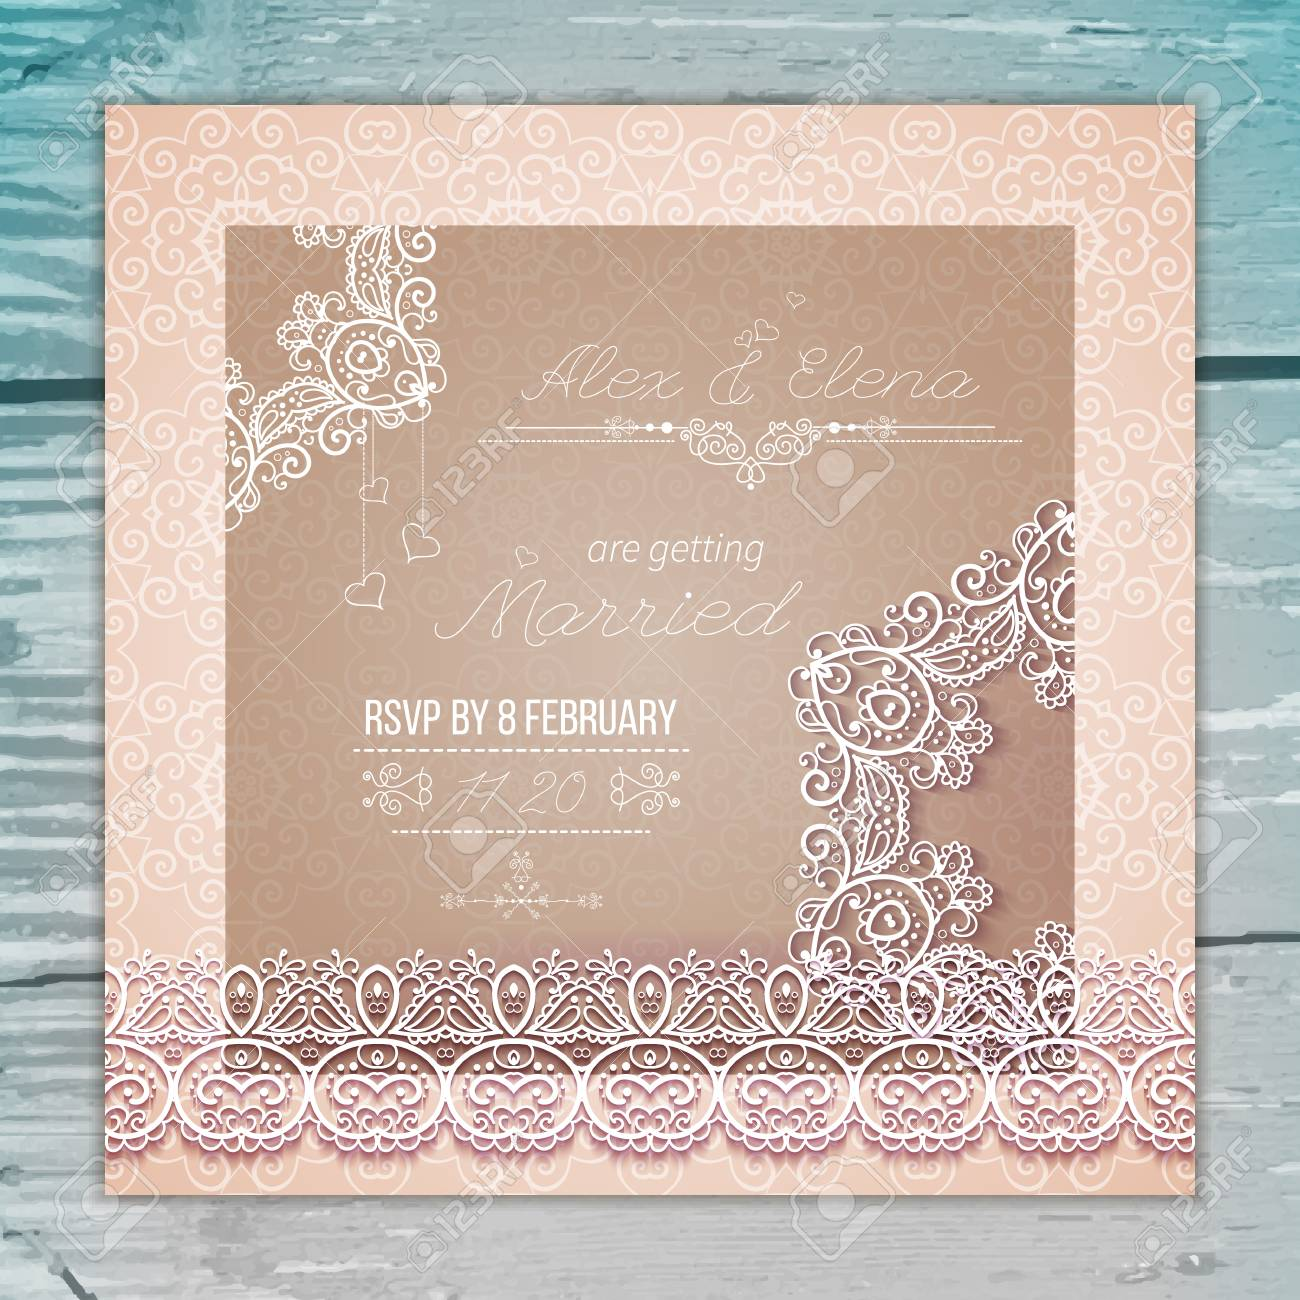 Vintage Wedding card or invitation with abstract lace seamless background and borders on a realistic wood texture. - 59758621